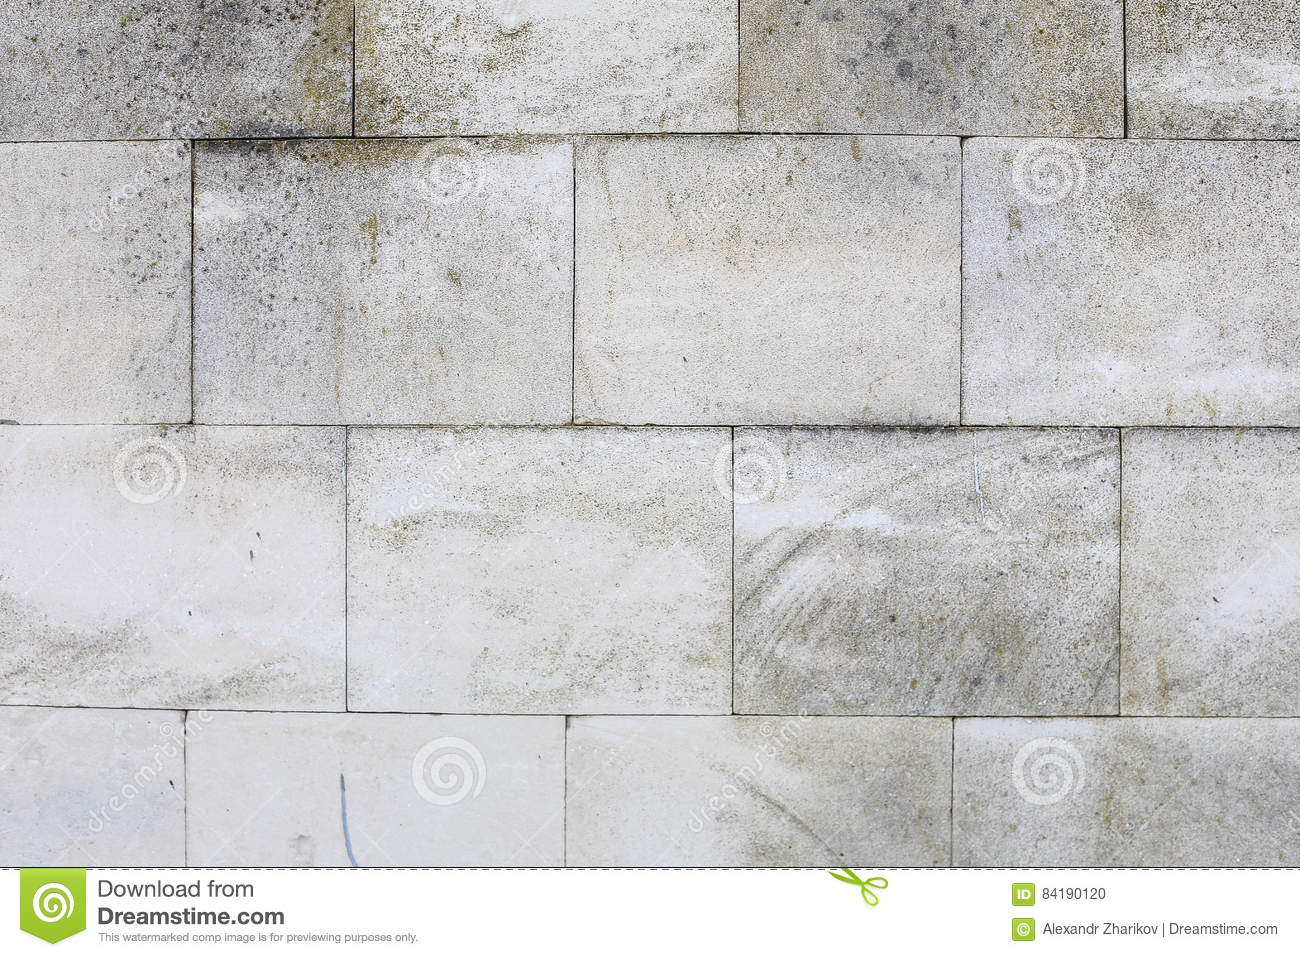 Aged Old Red White Gray Brick Wall Texture Destroyed Concrete Horizontal Background. Shabby Urban Messy Brickwall Structure. Stone